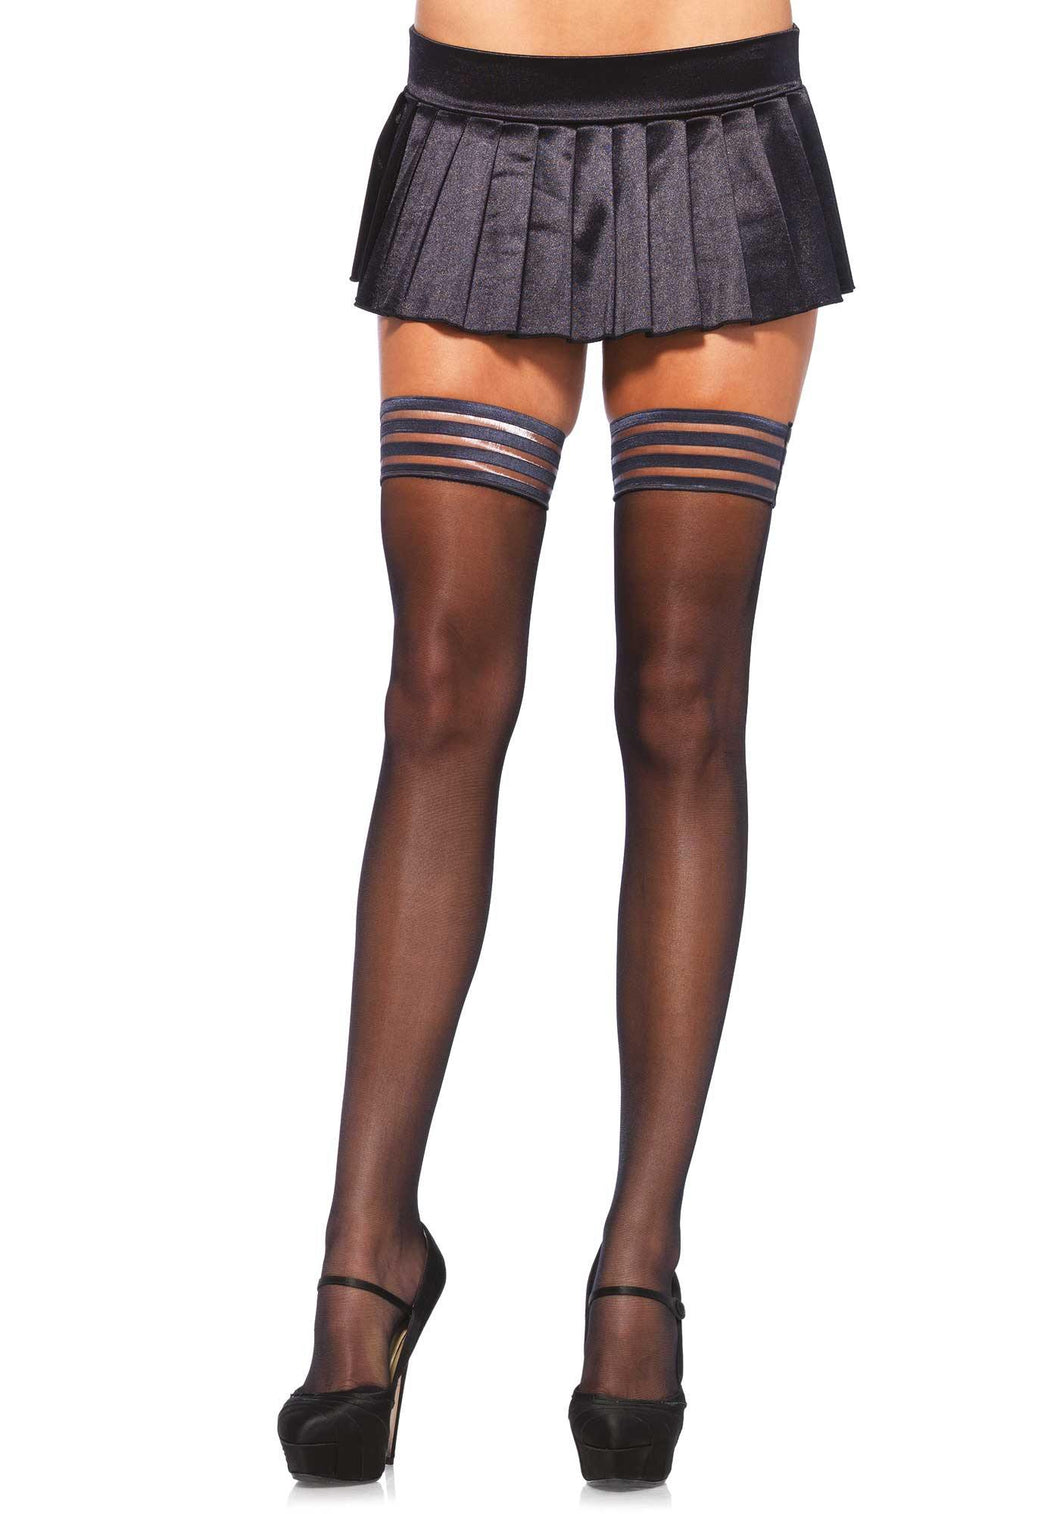 Sheer Striped Top Thigh High Hold-Ups - Amore Lingerie